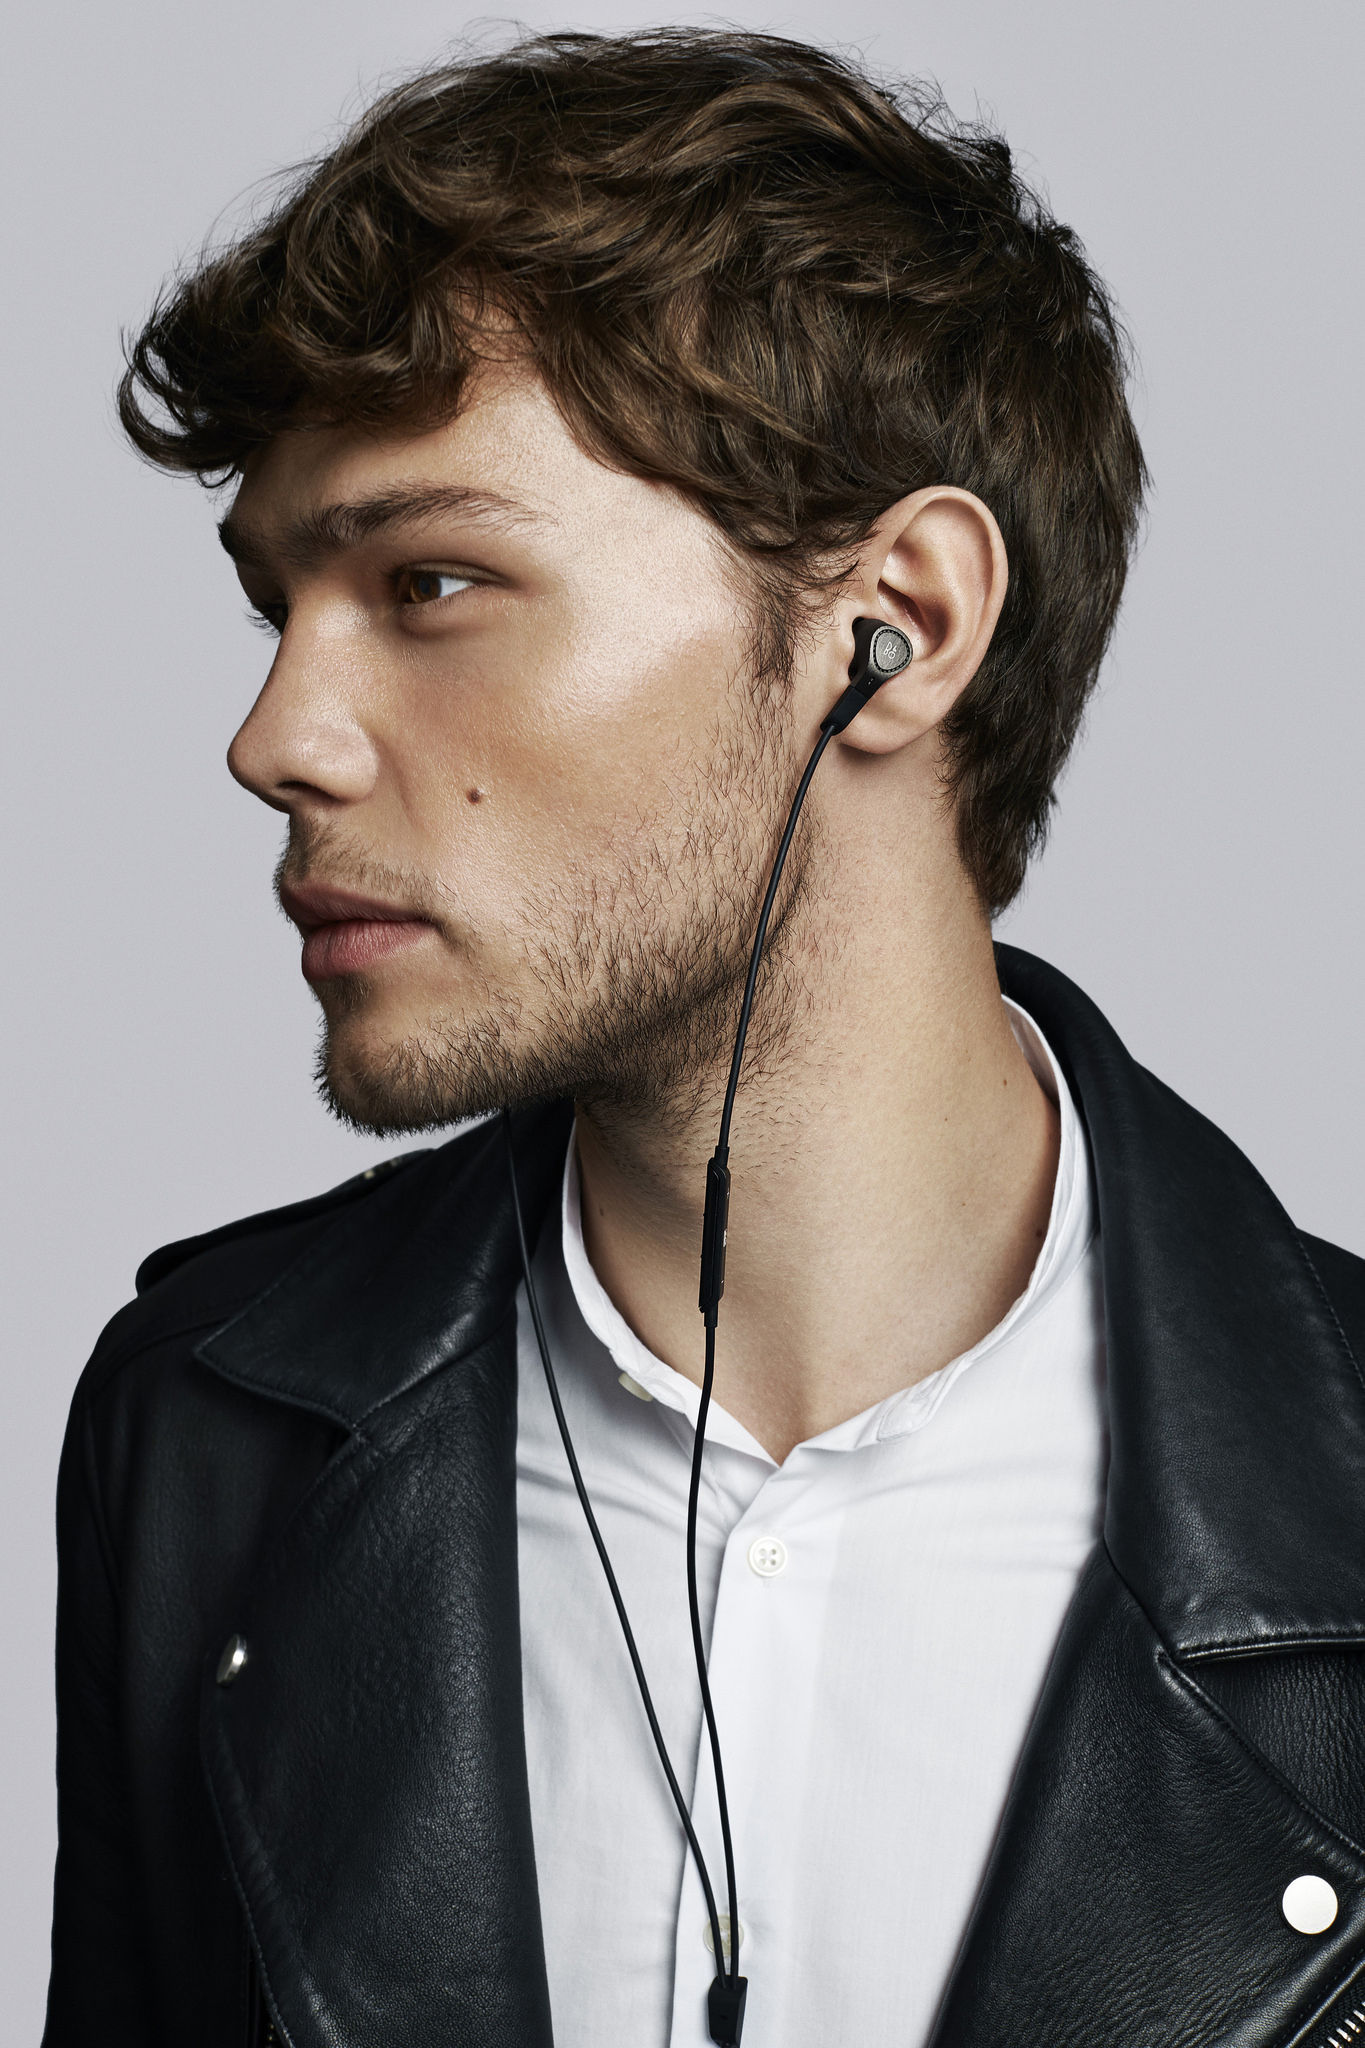 ecouteurs beoplay h3 anc intra auriculaires r duction active de bruit noir b o play by. Black Bedroom Furniture Sets. Home Design Ideas